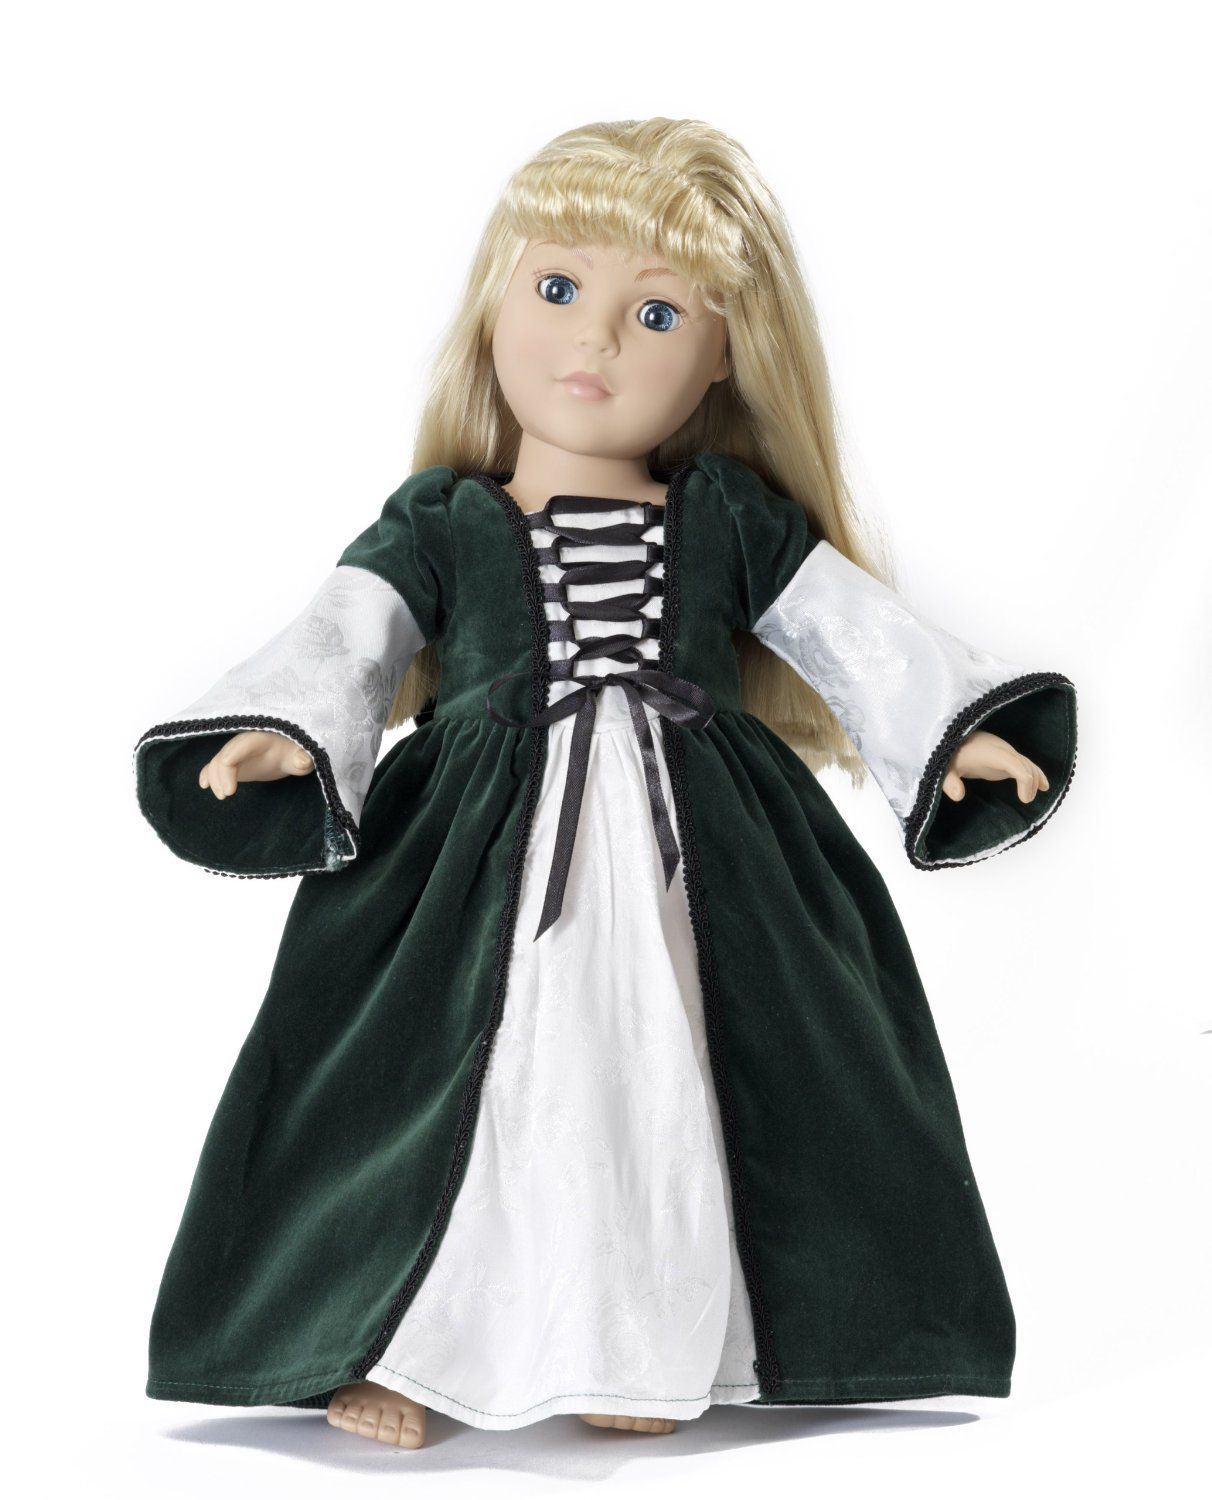 Medieval Princess Dress Outfit 18 Inch Doll Clothes